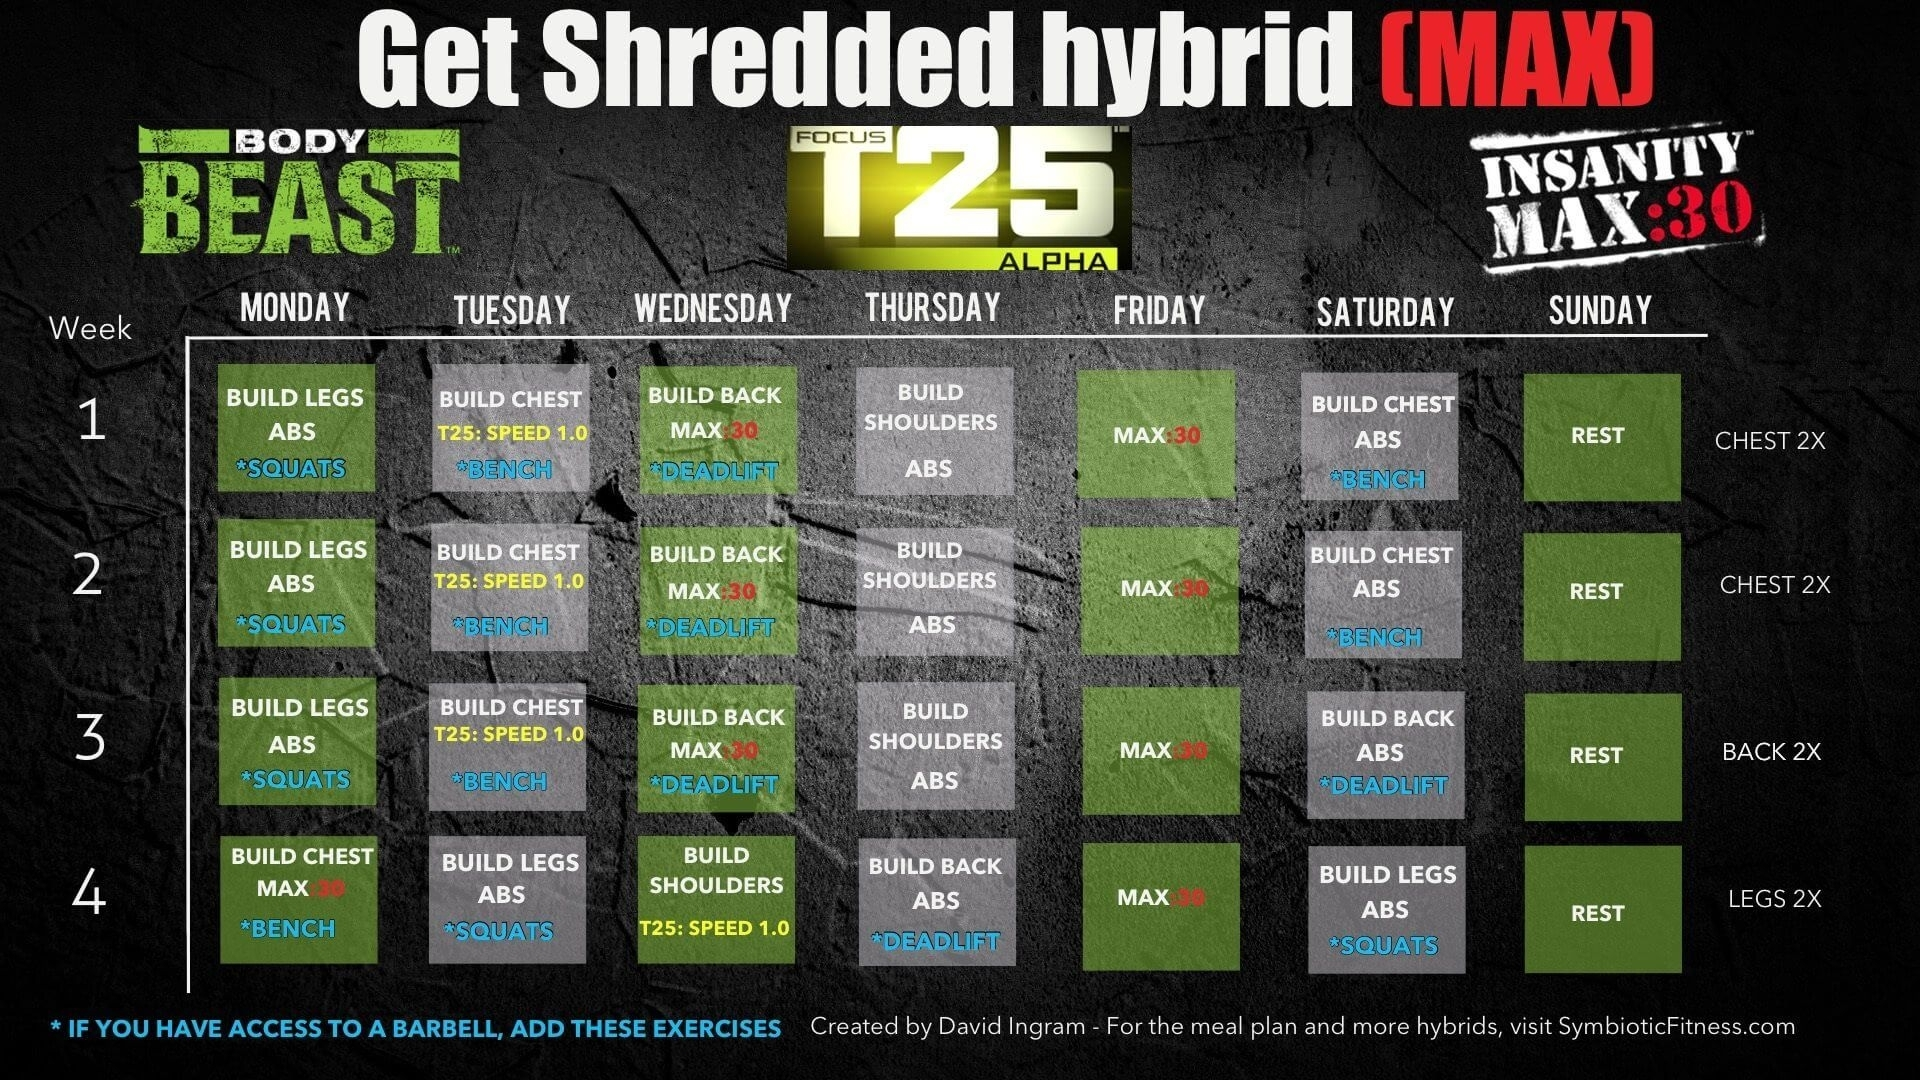 Body Beast P90X Hybrid Worksheets   Printable Worksheets And intended for Calendrier Hybride Insanity Max 30